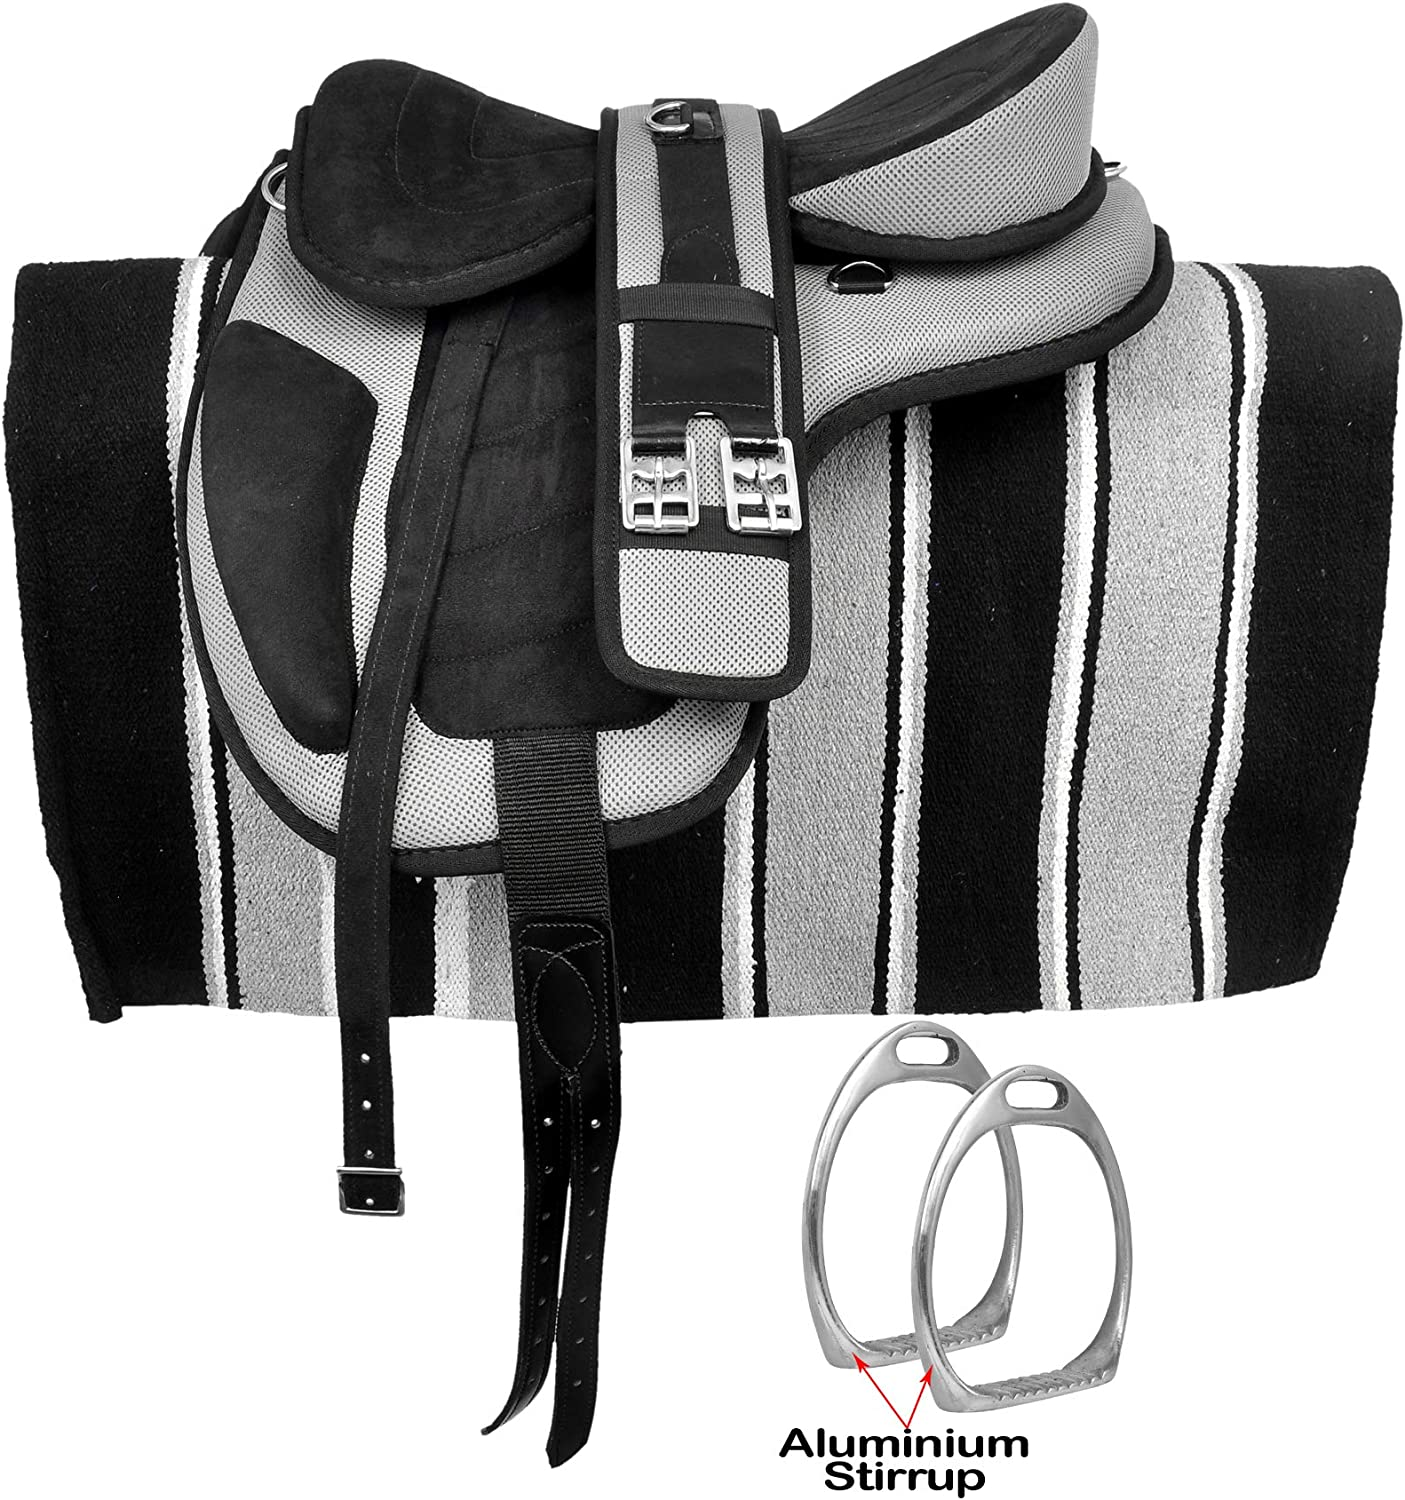 Size 14 to 18 Inch Seat Available Leather Straps Free Matching Girth Navajo Saddle Pad Aluminium Stirrup Manaal Enterprises Synthetic Treeless FREEMAX English Horse Saddles Tack 16 Inches Seat